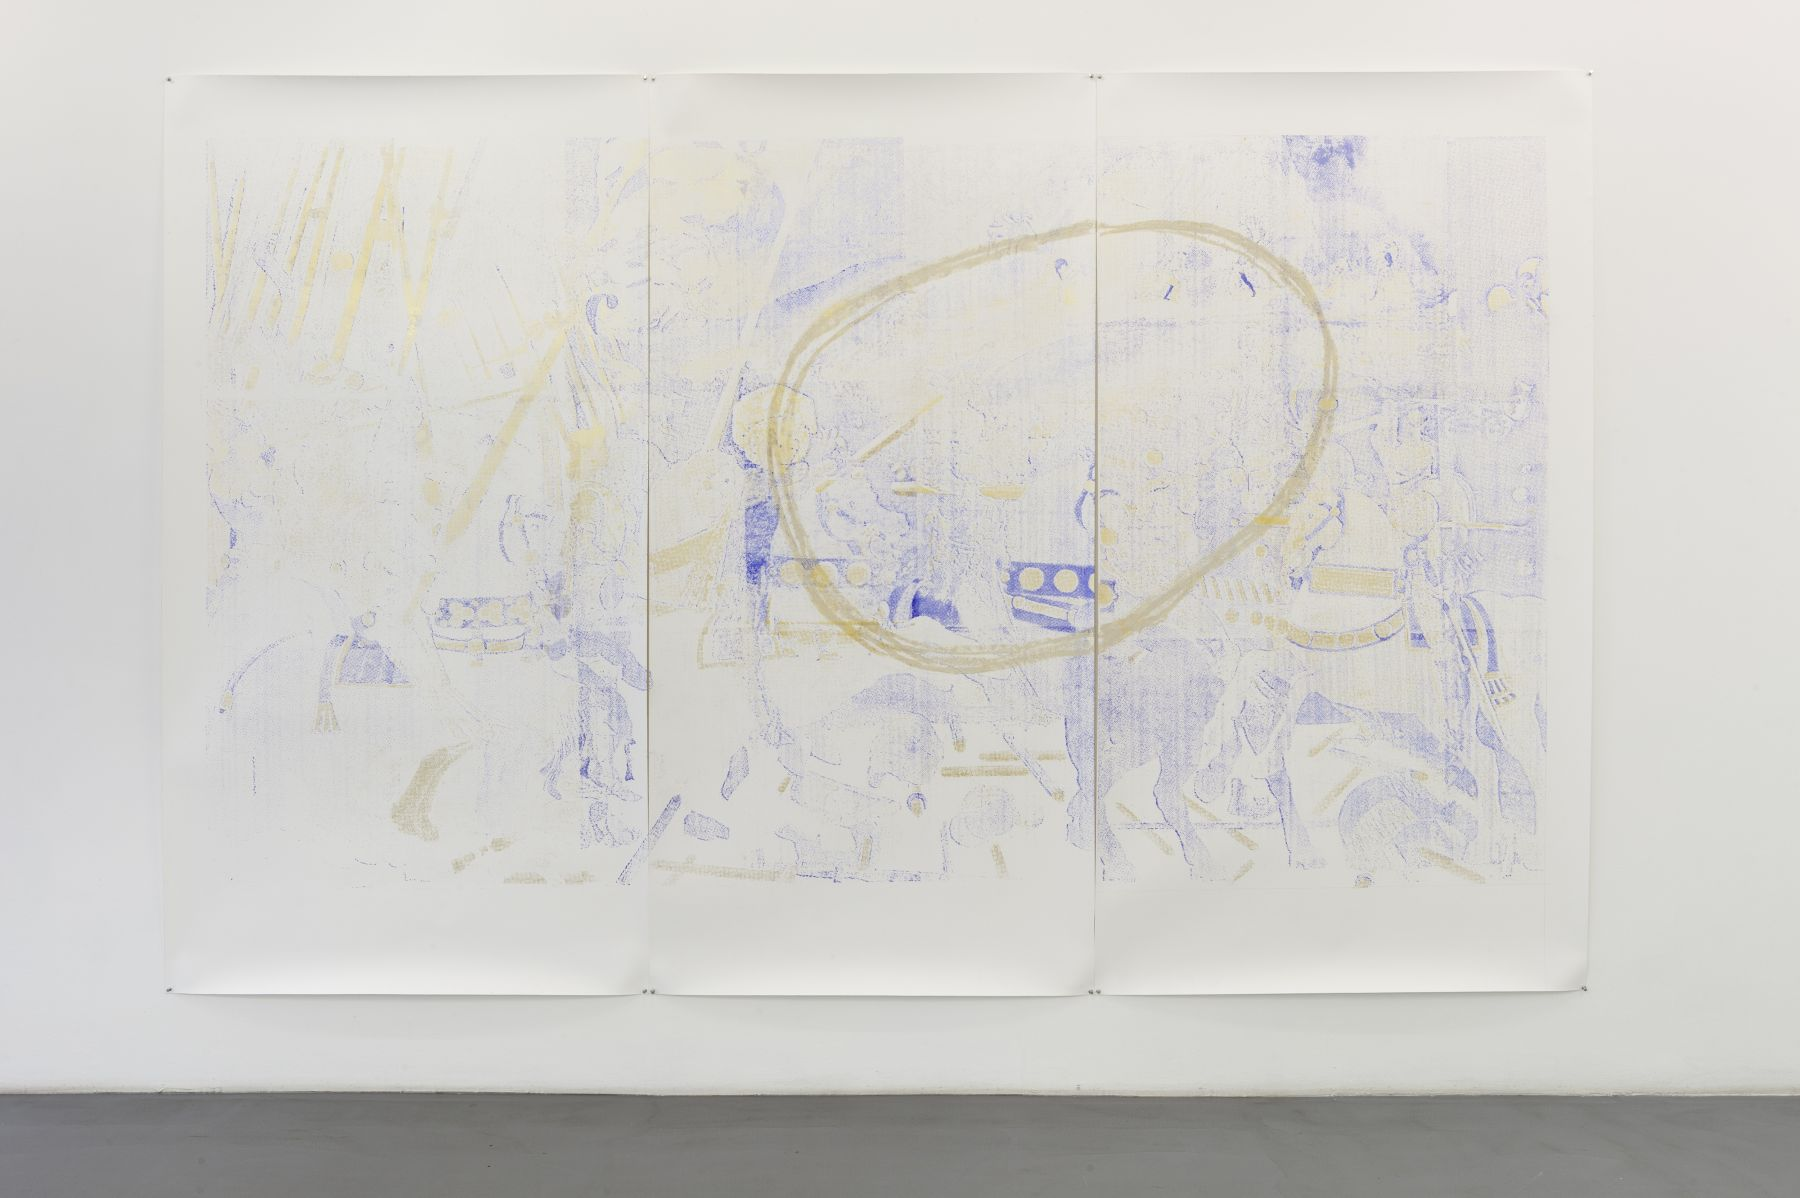 Lucy Skaer: Blanks and Ballast– installation view 2